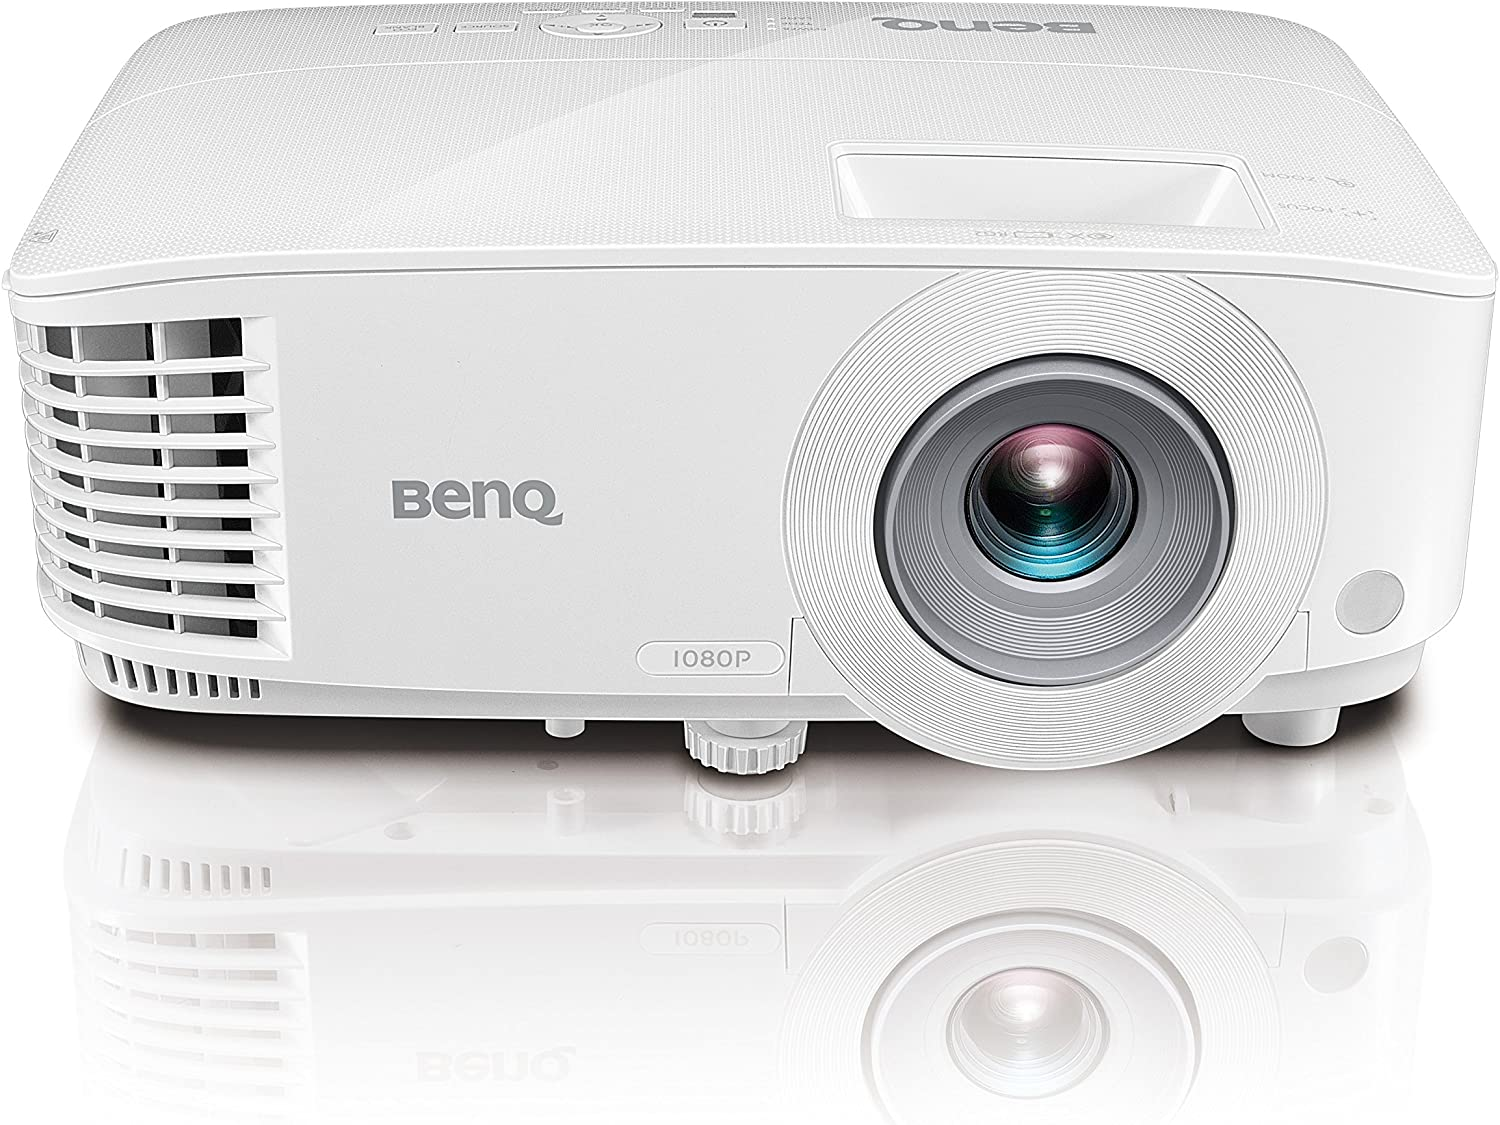 BenQ MH733 1080P Business Projector | 4000 Lumens for Lights On Enjoyment | 16,000:1 Contrast Ratio for Crisp Picture | Keystone for Flexible Setup